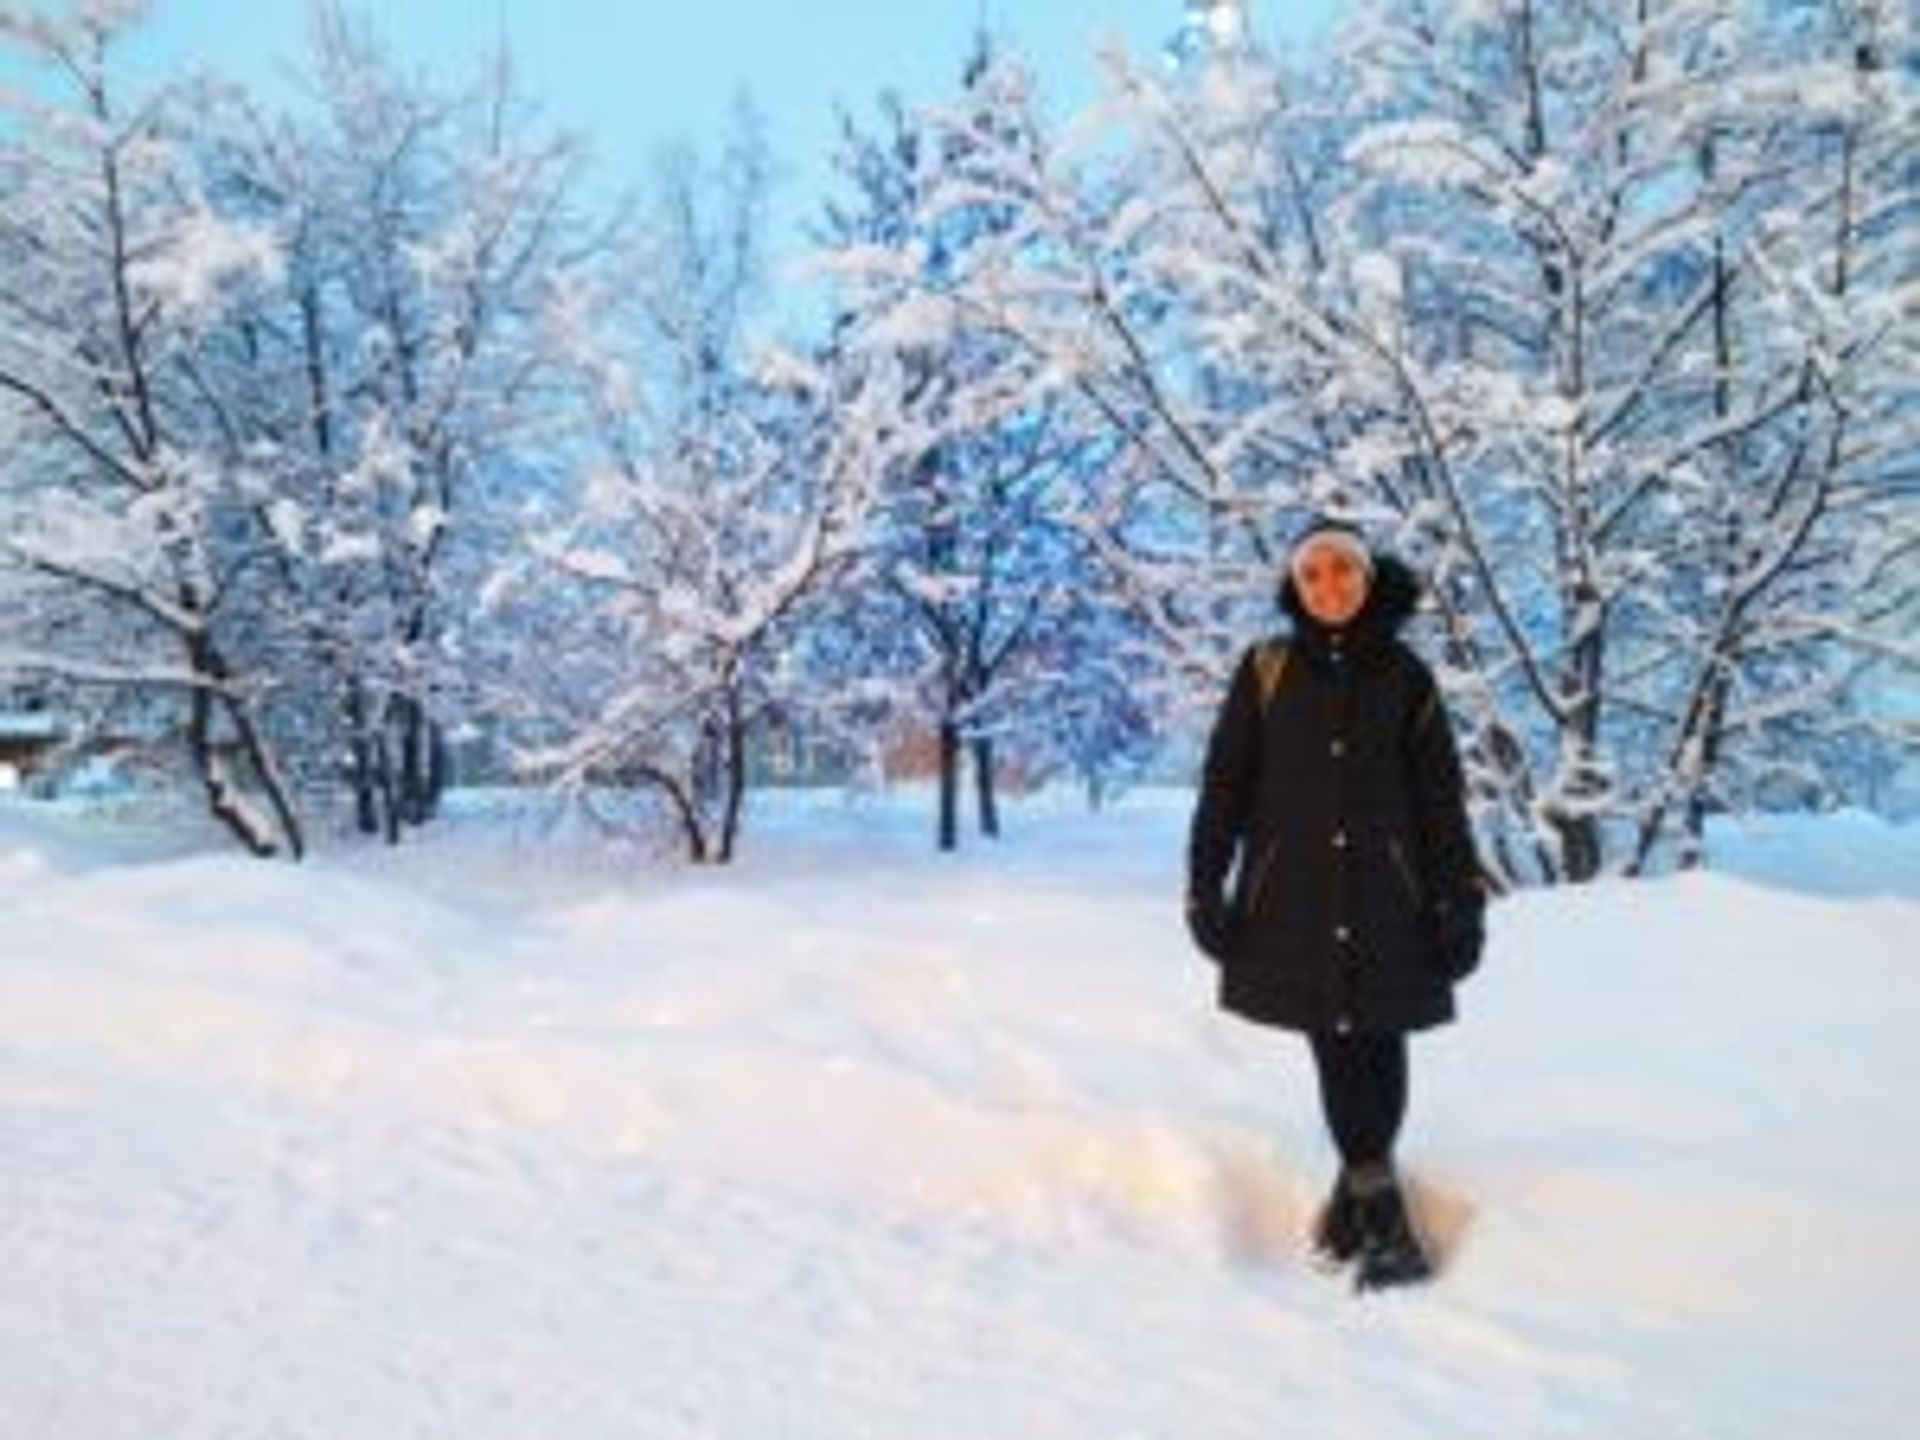 Maria standing in a snowy park.